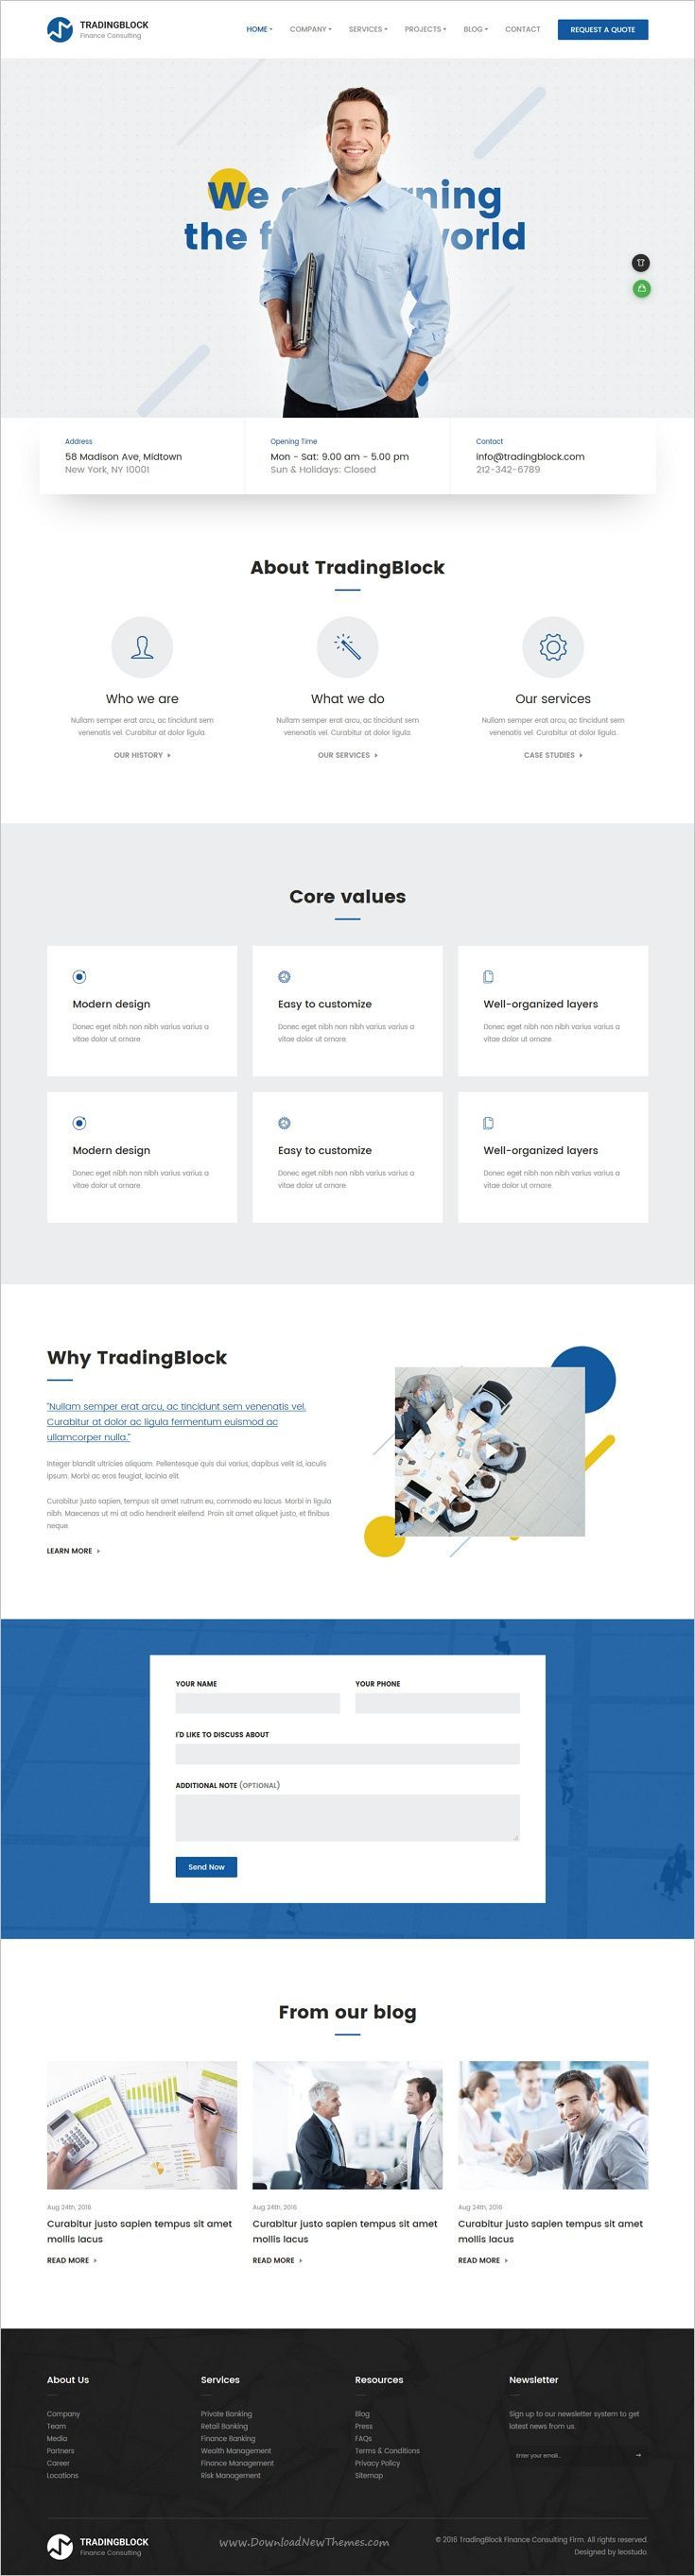 Tradingblock is a wonderful 8in1 responsive #Bootstrap template for financing, consulting, #accounting services & other related niches in the industry websites download now➩ https://themeforest.net/item/finance-business-html-responsive-template-tradingblock/18953353?ref=Datasata #FinanceBanner